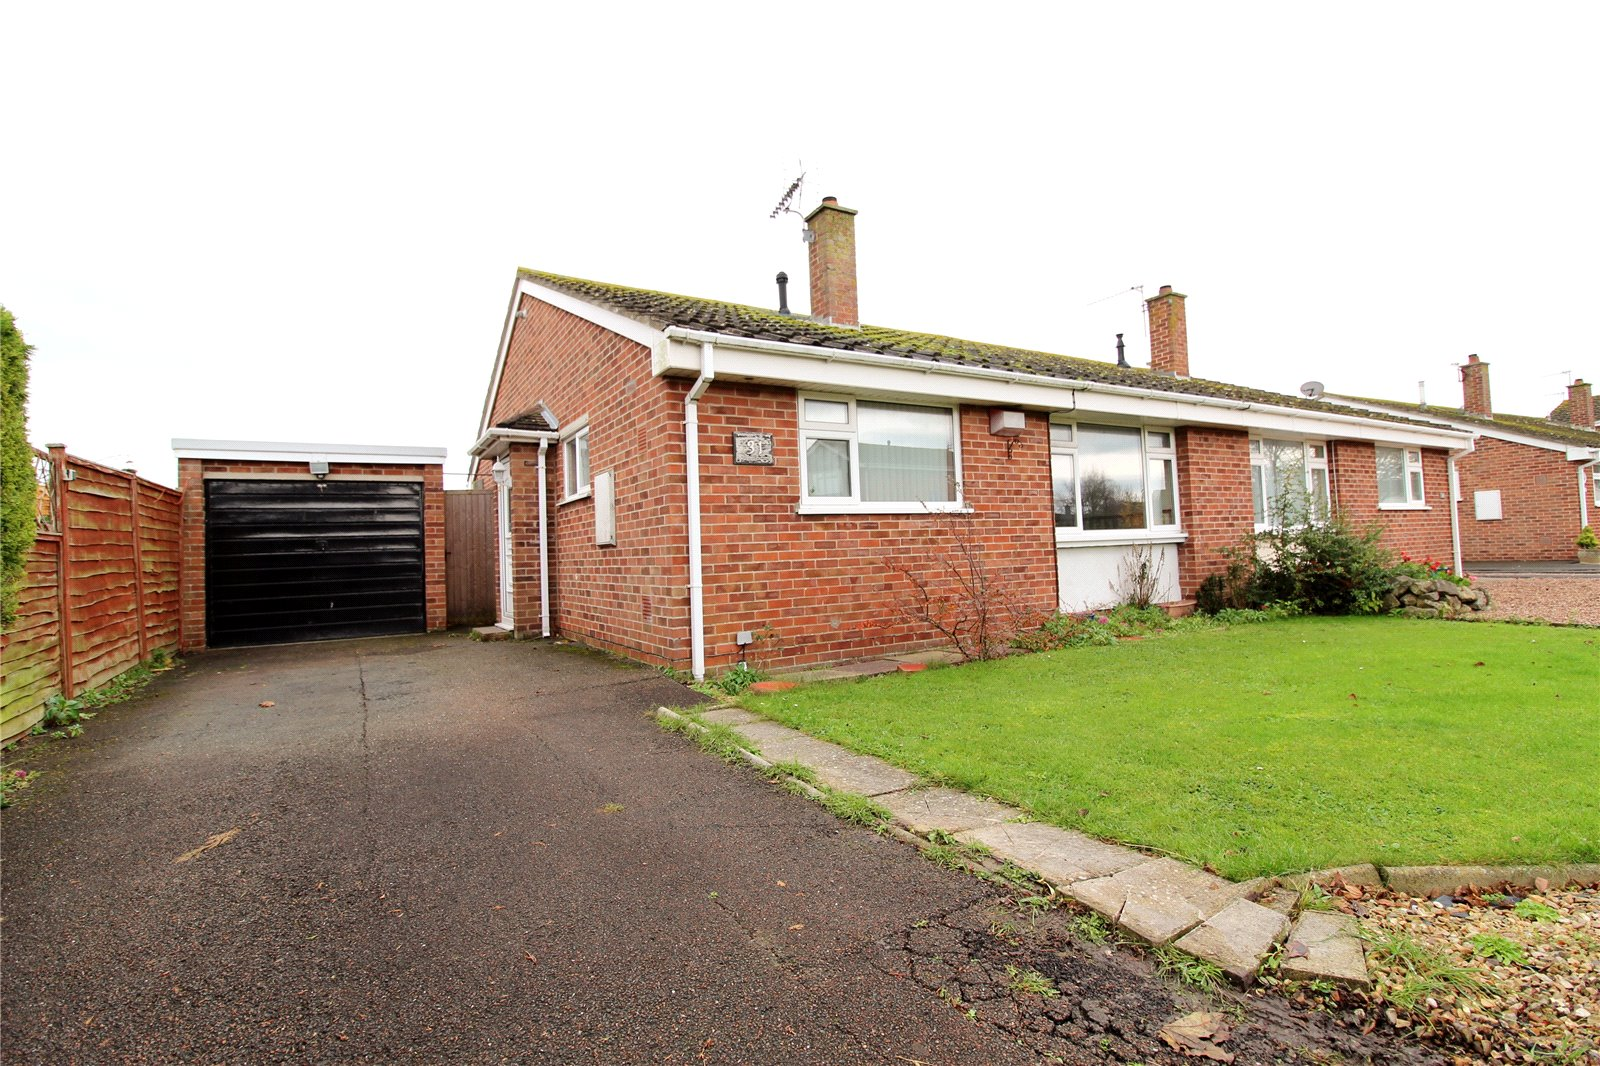 2 Bedrooms Bungalow for sale in Stoneleigh Close Burnham on Sea Somerset TA8